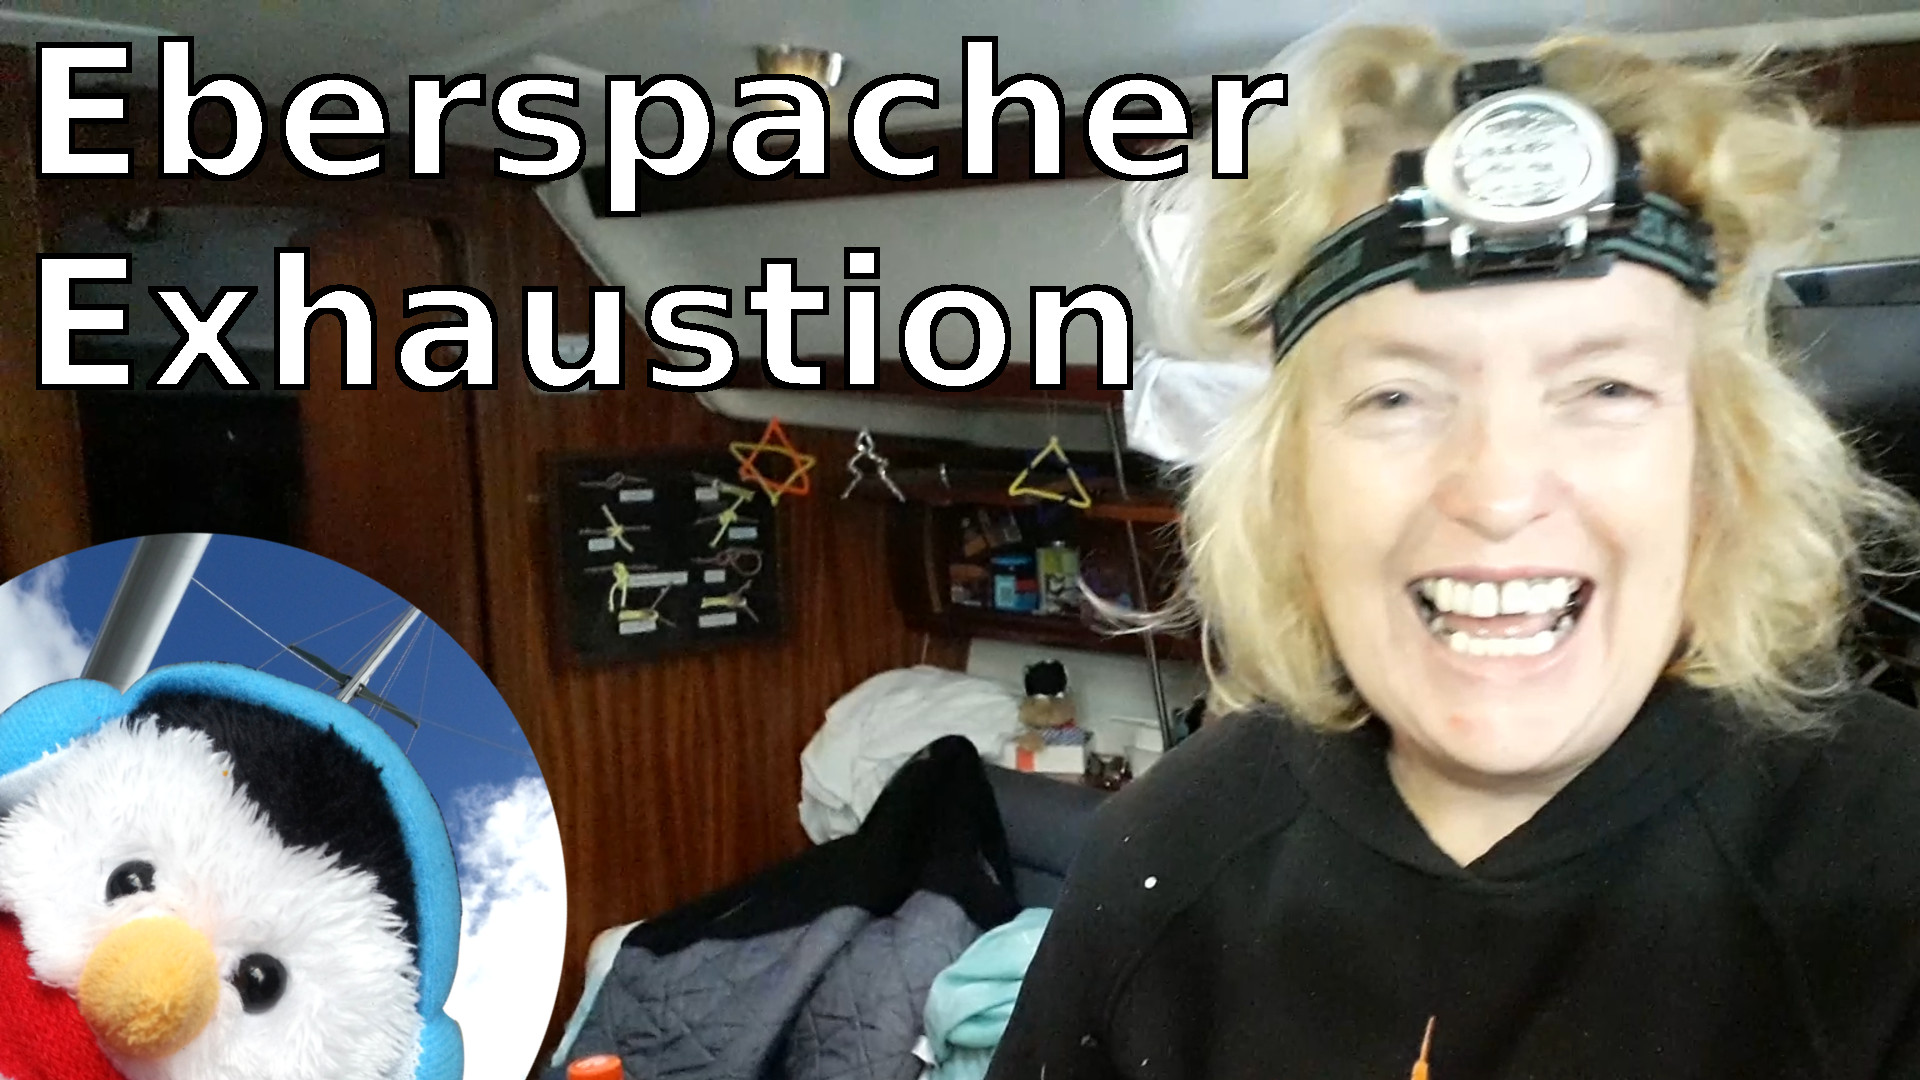 Watch our 'Eberspacher Exhaustion' and add comments etc